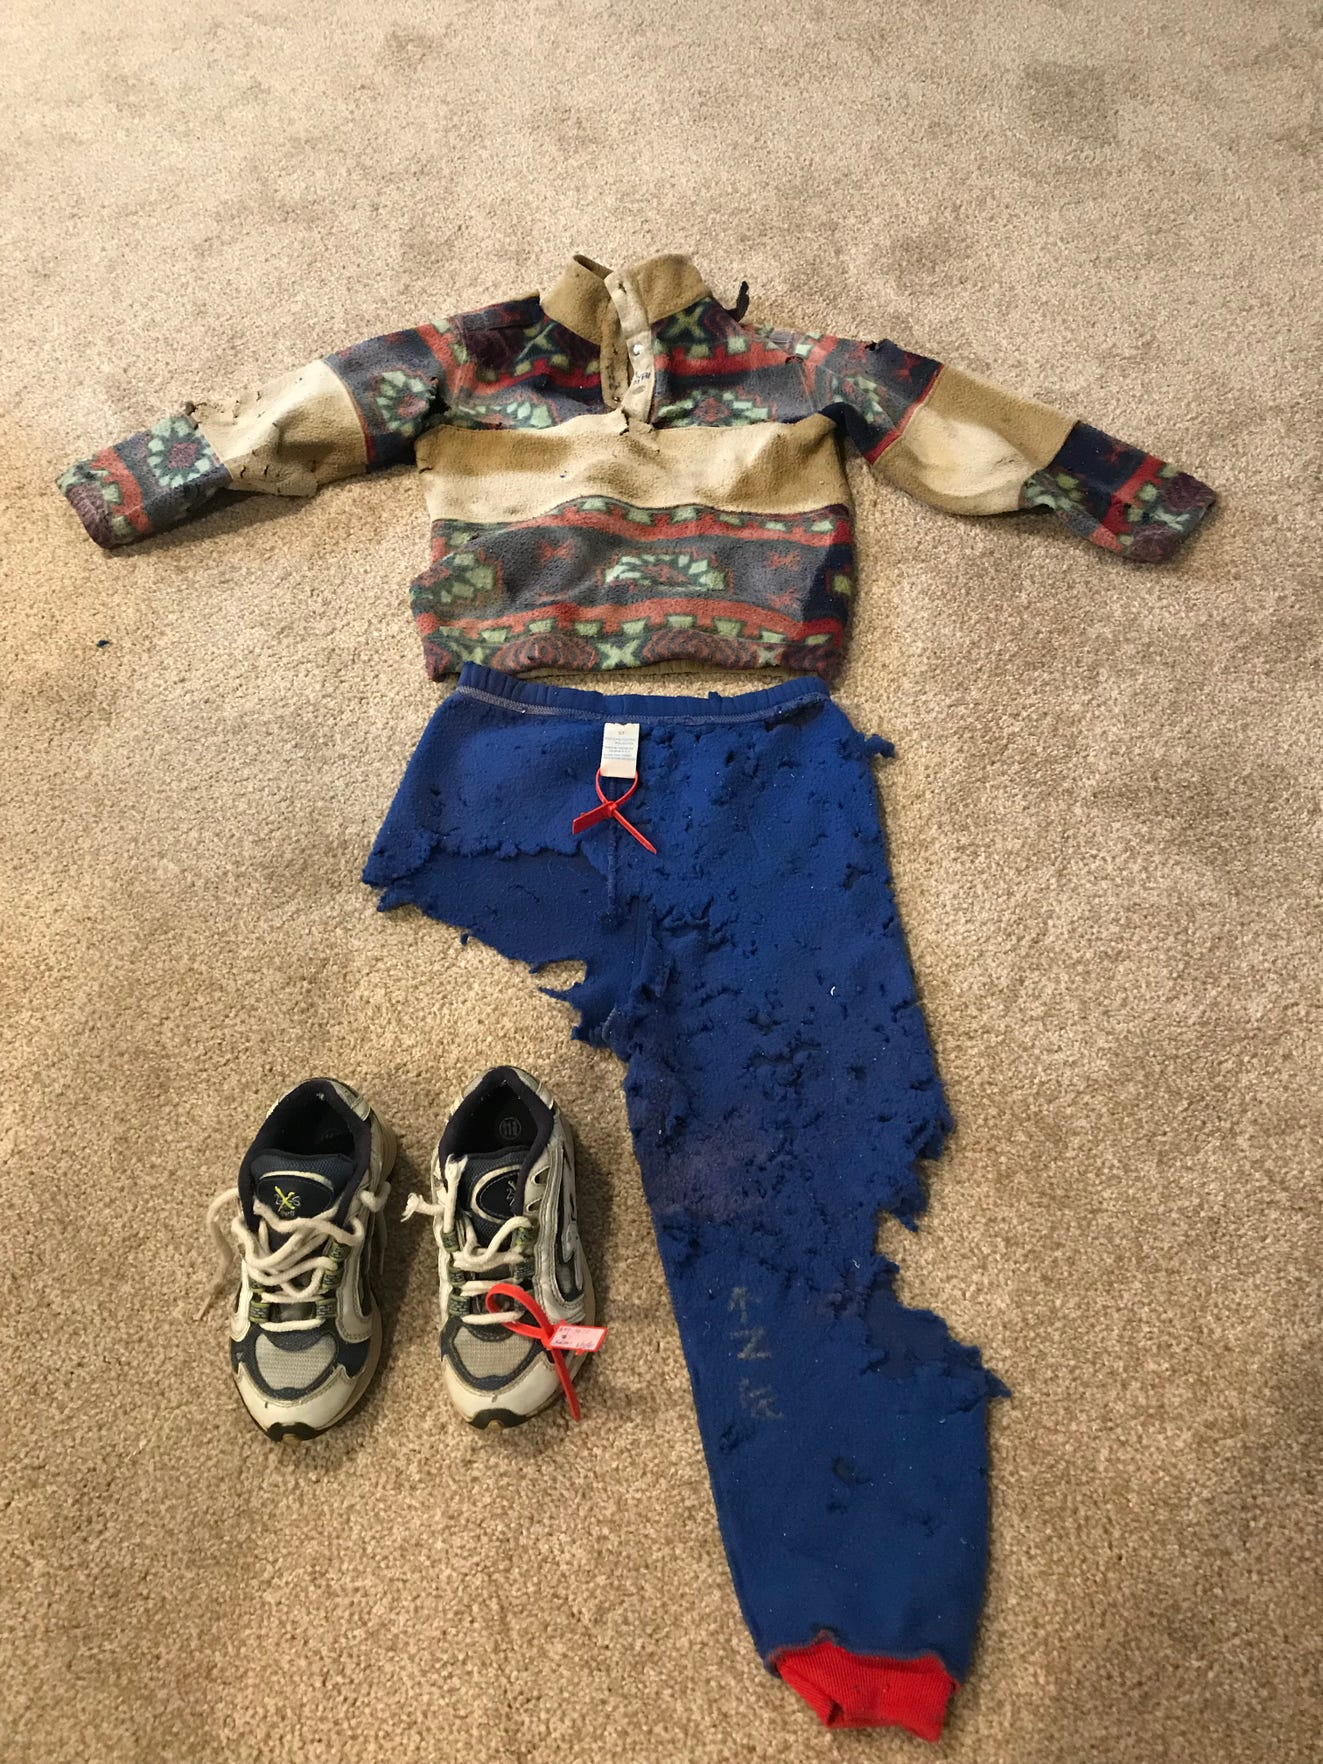 Jaryd's clothing and shoes found by hikers nearly four years after he went missing.